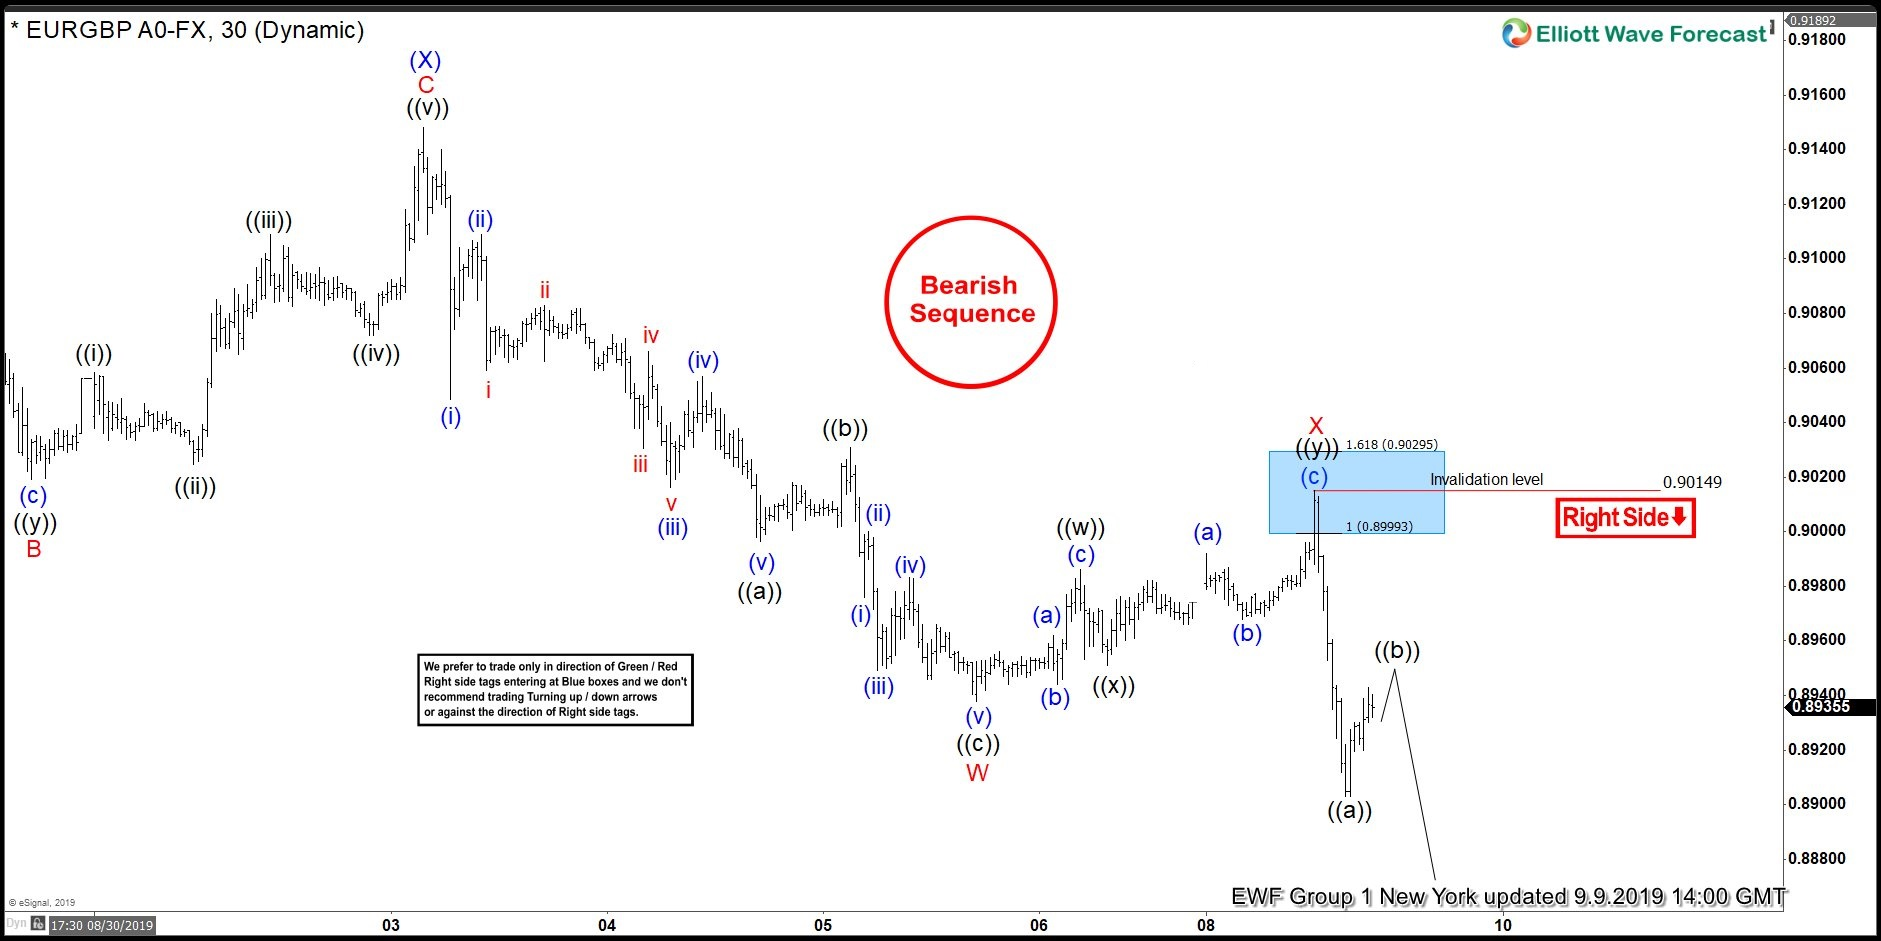 EURGBP 1 Hour New York Elliott Wave Analysis